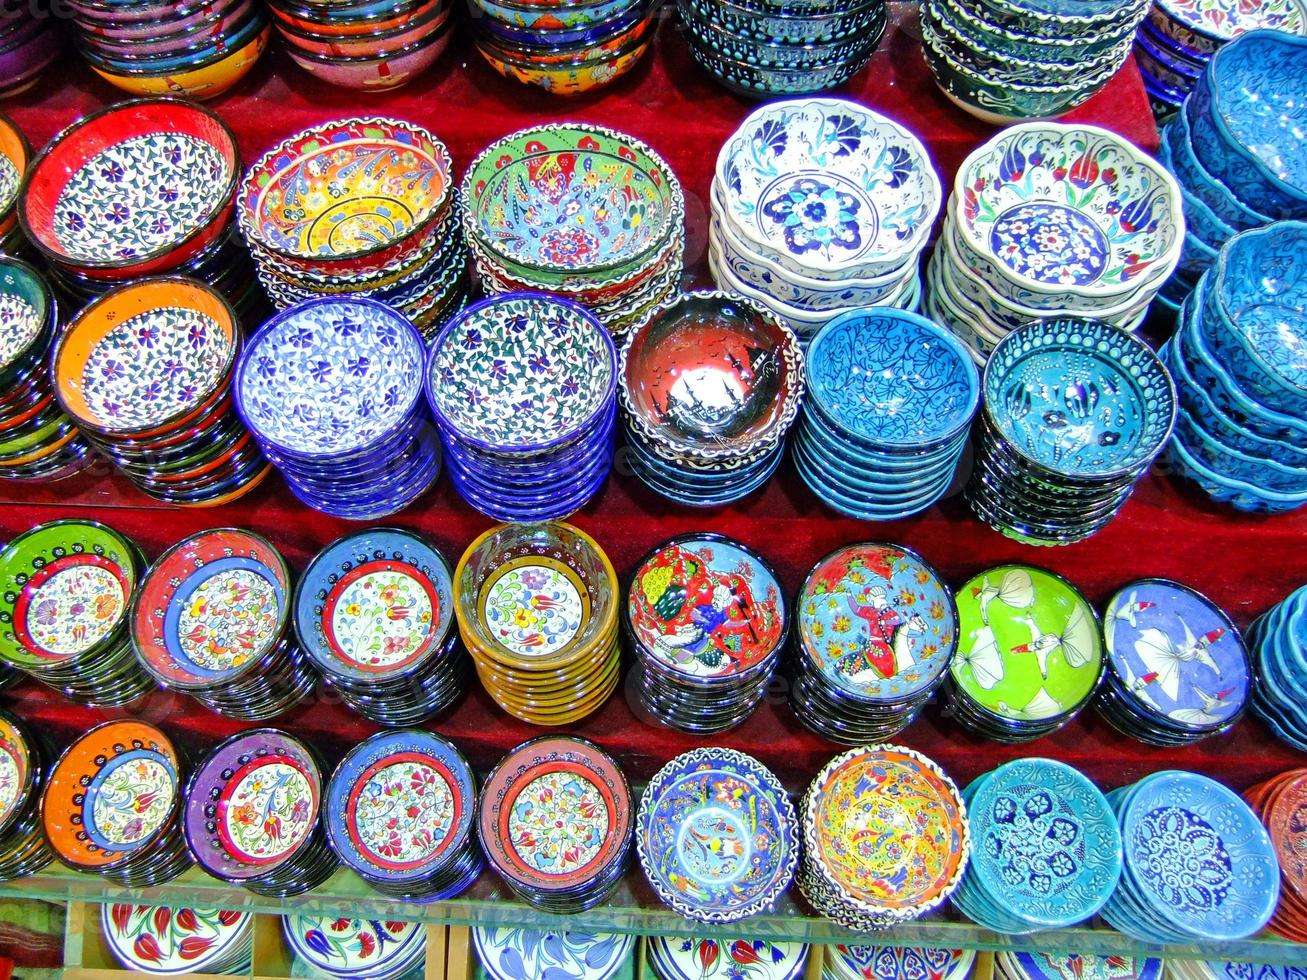 Display of colorful pottery, Istanbul, Turkey photo